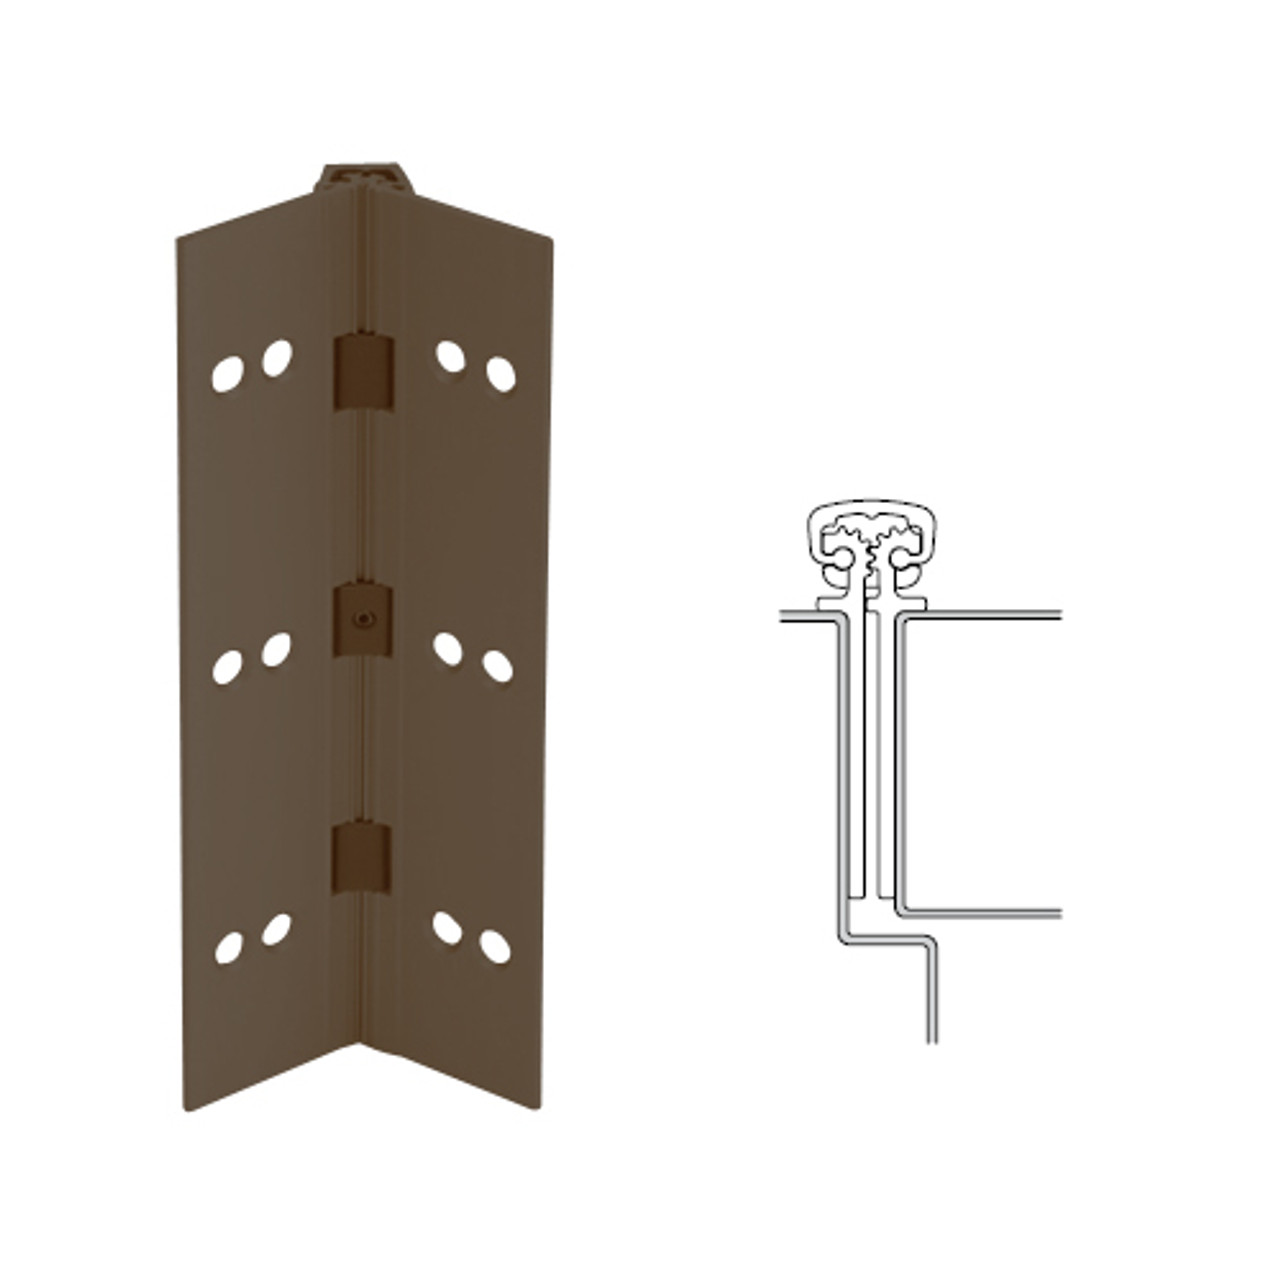 027XY-313AN-85-TEKWD IVES Full Mortise Continuous Geared Hinges with Wood Screws in Dark Bronze Anodized